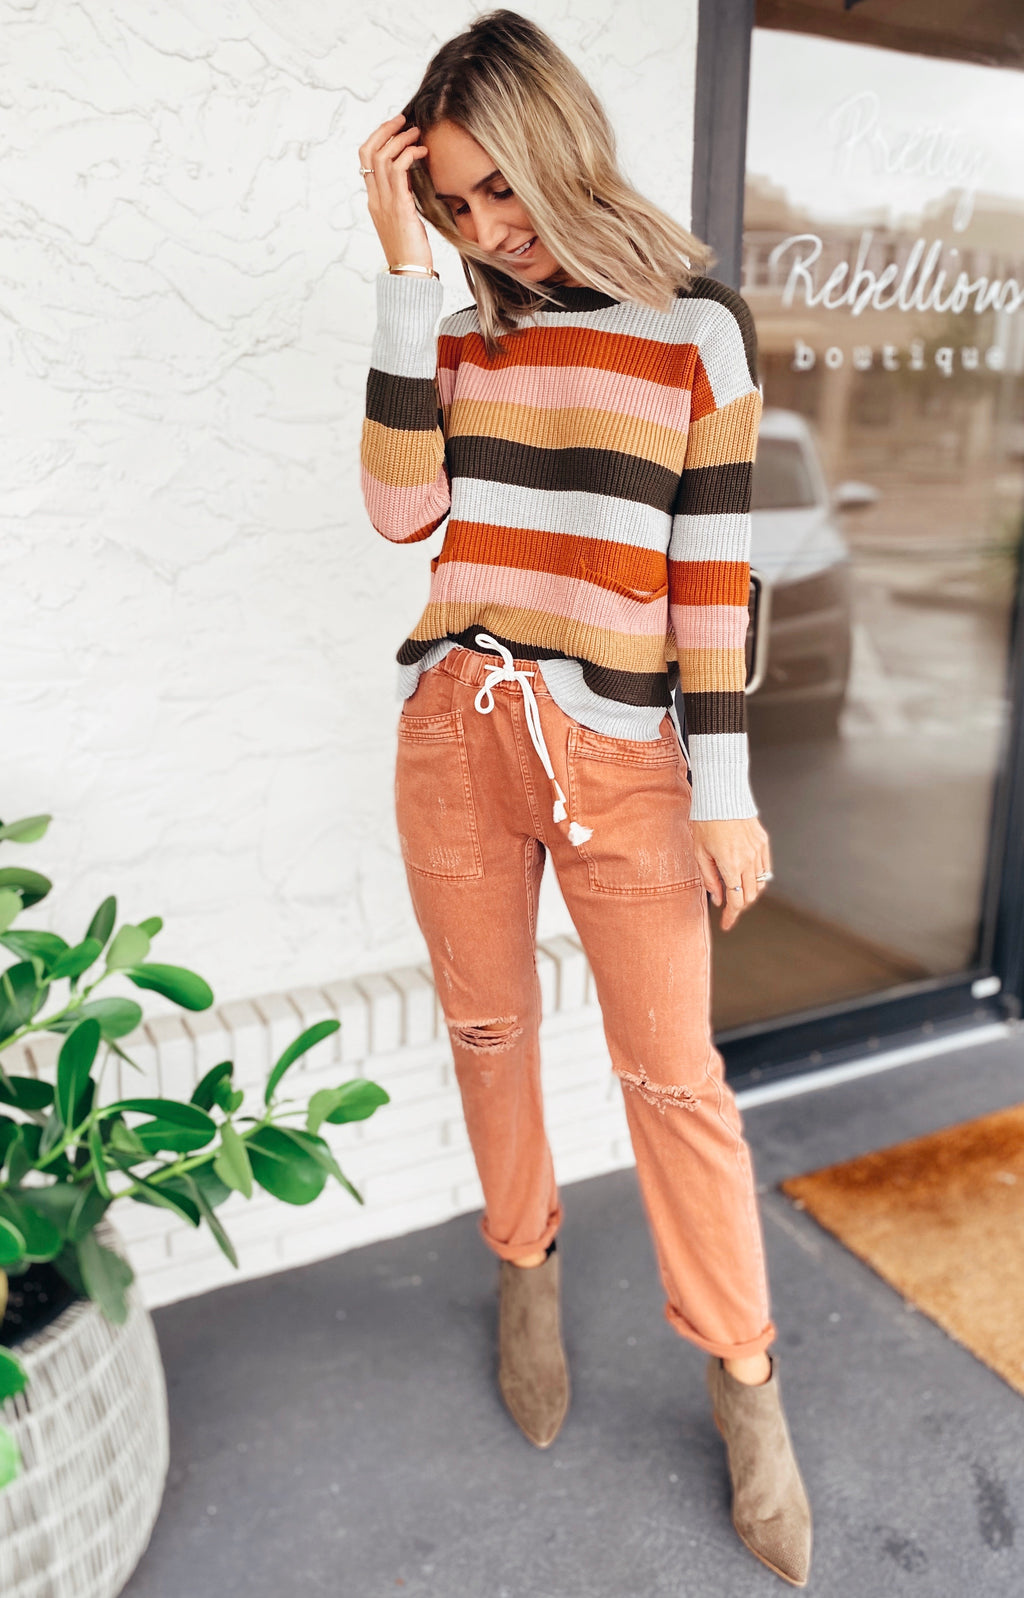 The Canvas Rust Pants